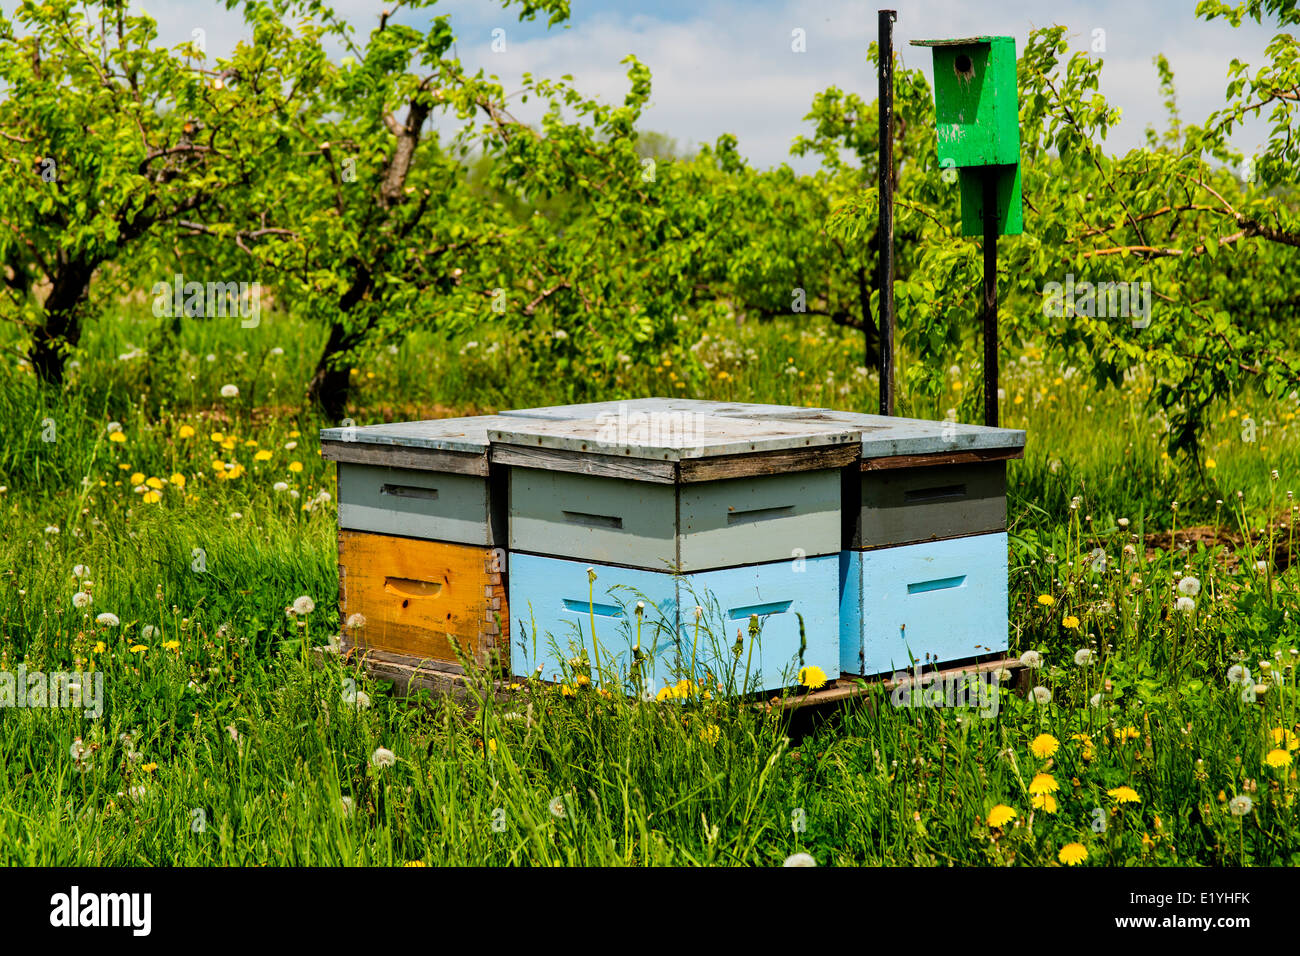 Beehives in apple orchard Ontario Canada - Stock Image